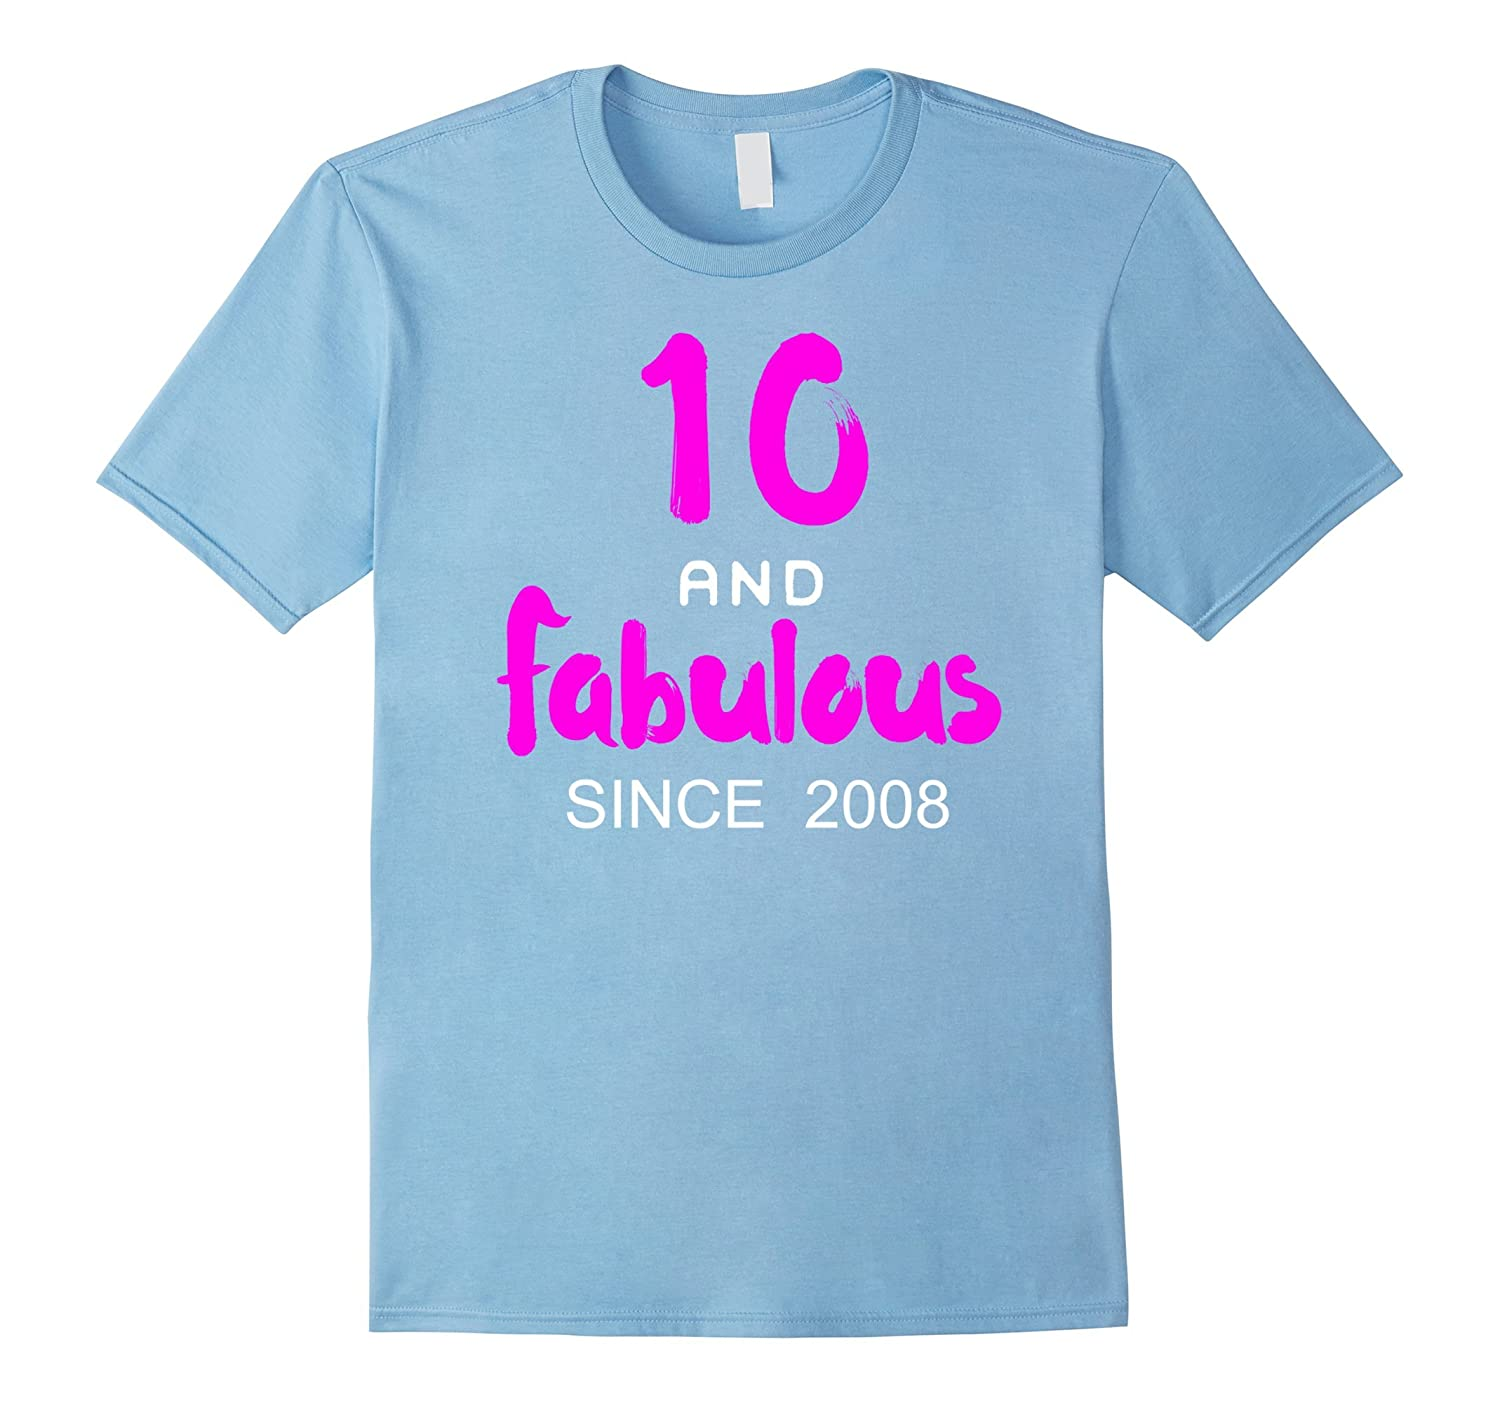 10 and Fabulous since 2008 for 10 year old girl shirts gifts-ah my shirt one gift